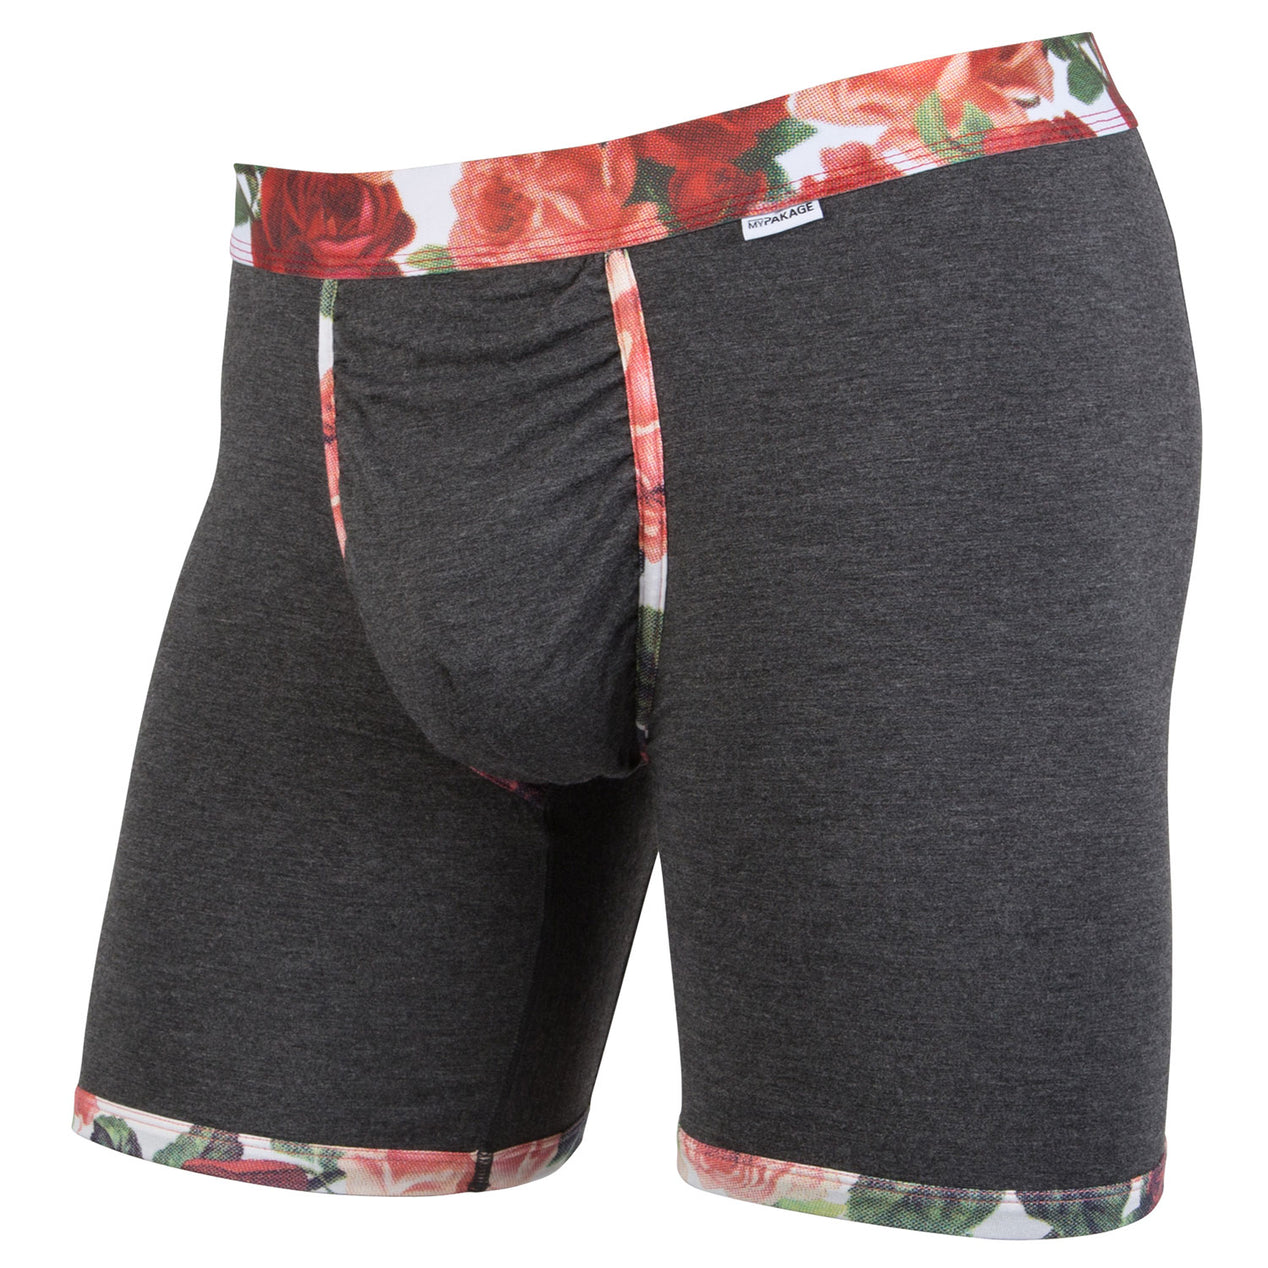 c76eda75697875 MyPakage Weekday Boxer Brief - Printed Bands - Men's. $17.99 CAD $32.99  CAD. 5 star rating 8 Reviews. Select Color / Size. Dark Heather ...